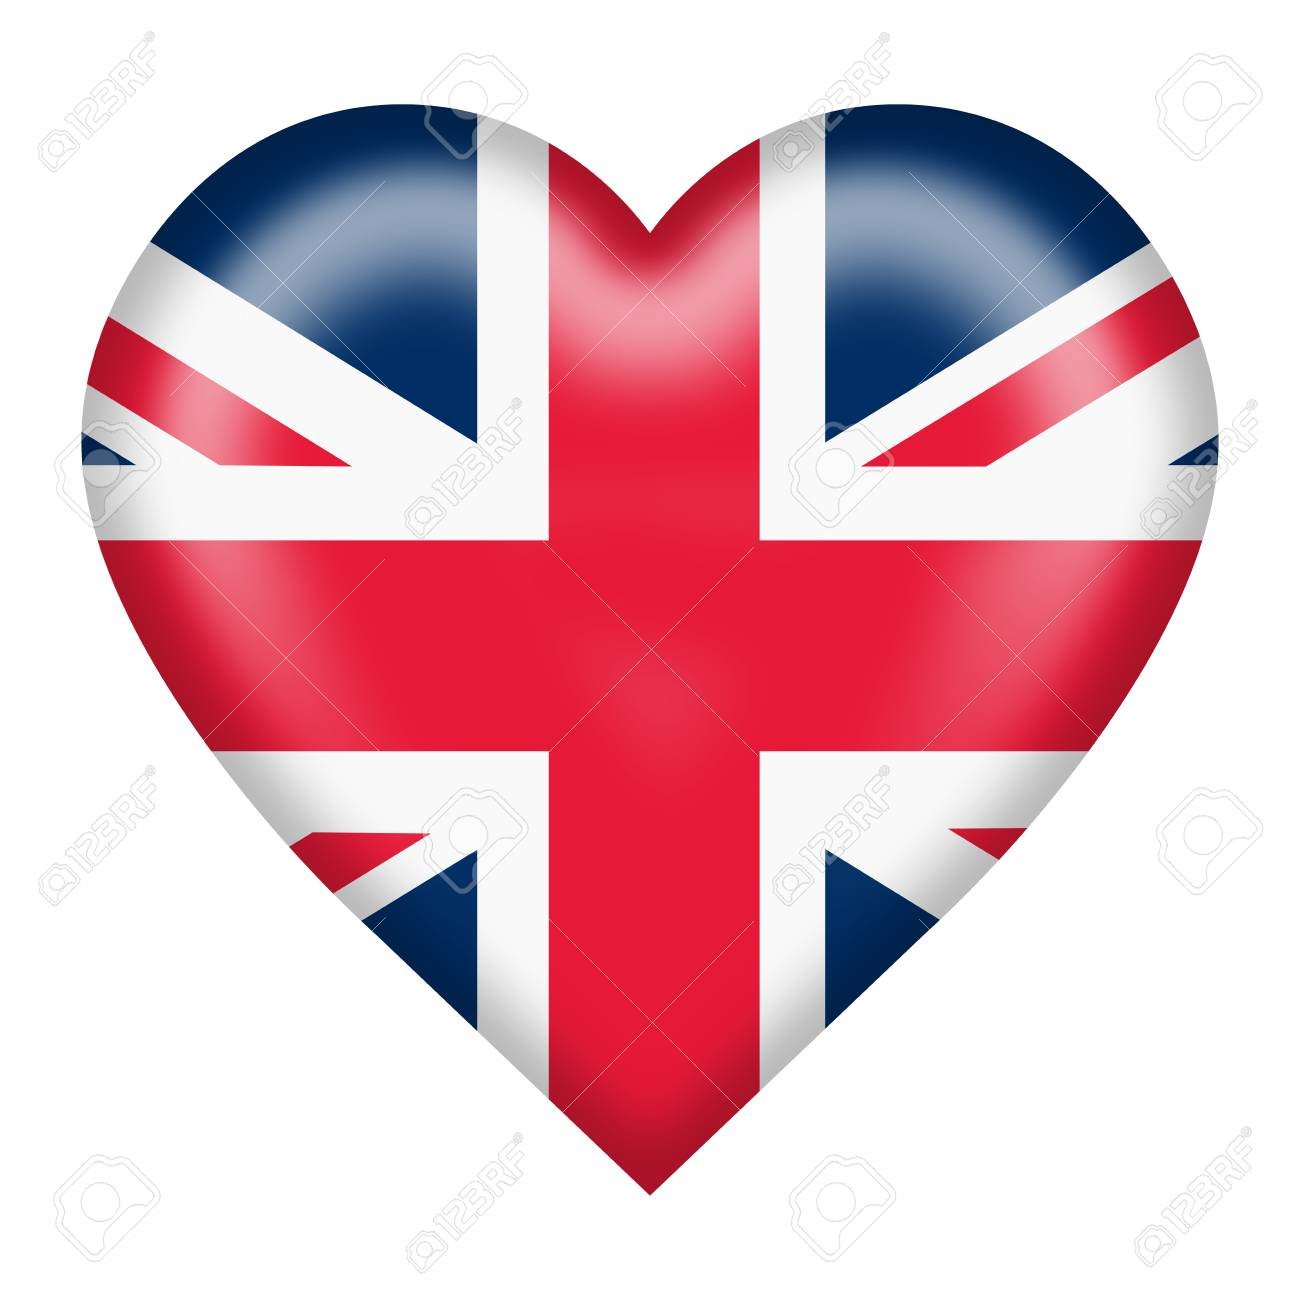 A union flag heart button isolated on white - 122888793